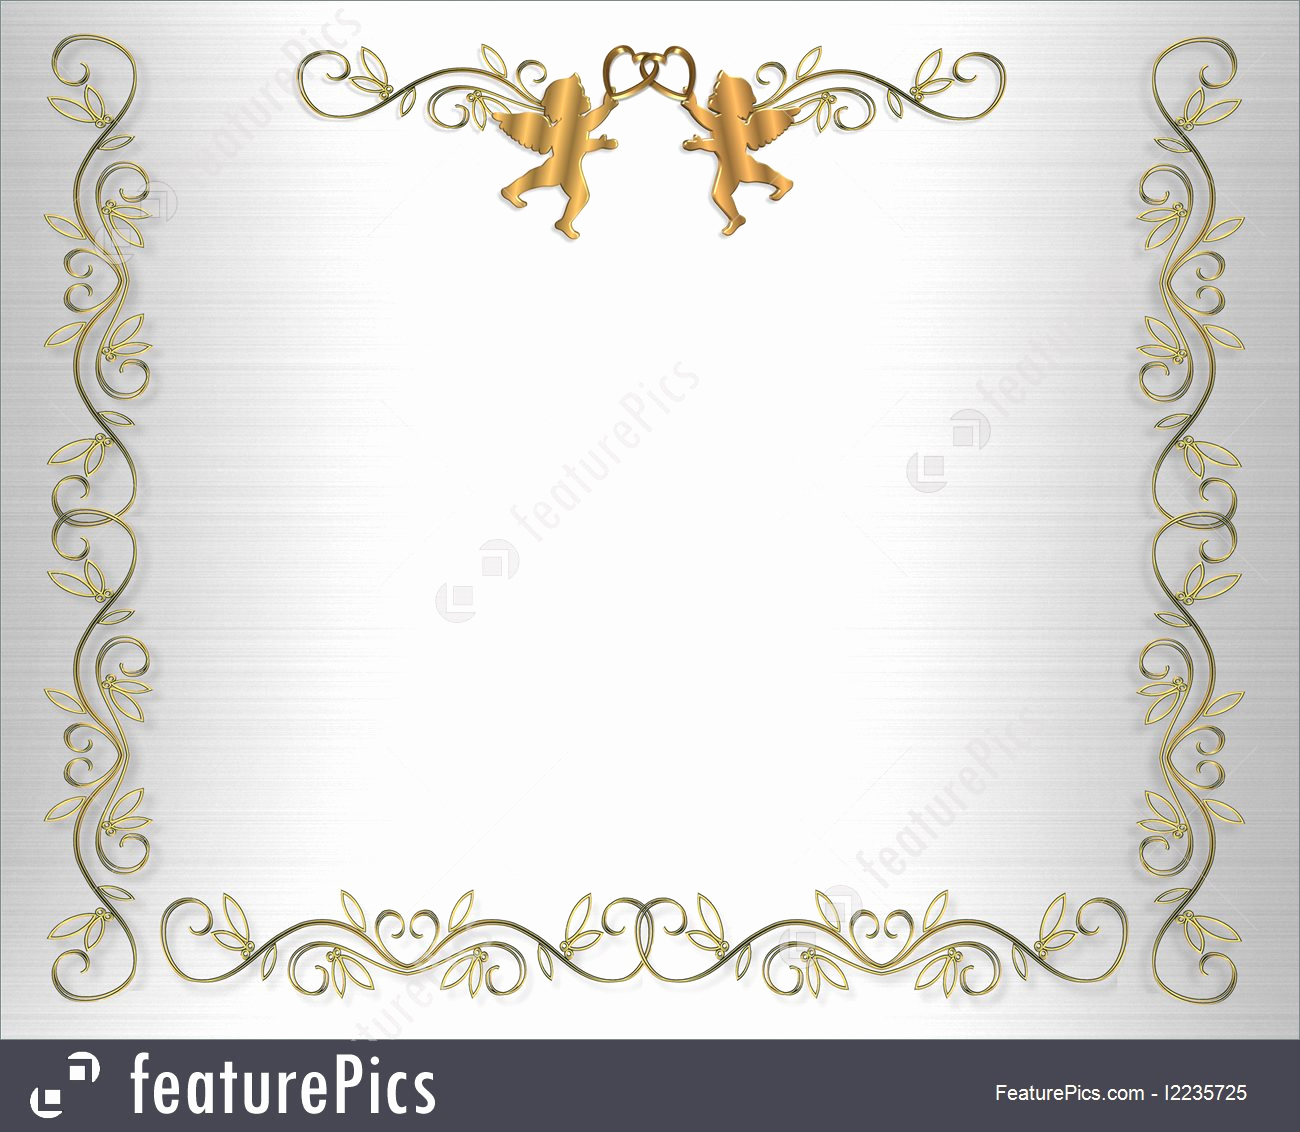 Wedding Invitation Border Design New Collection Of Free Edged Clipart Elegant Gold Border